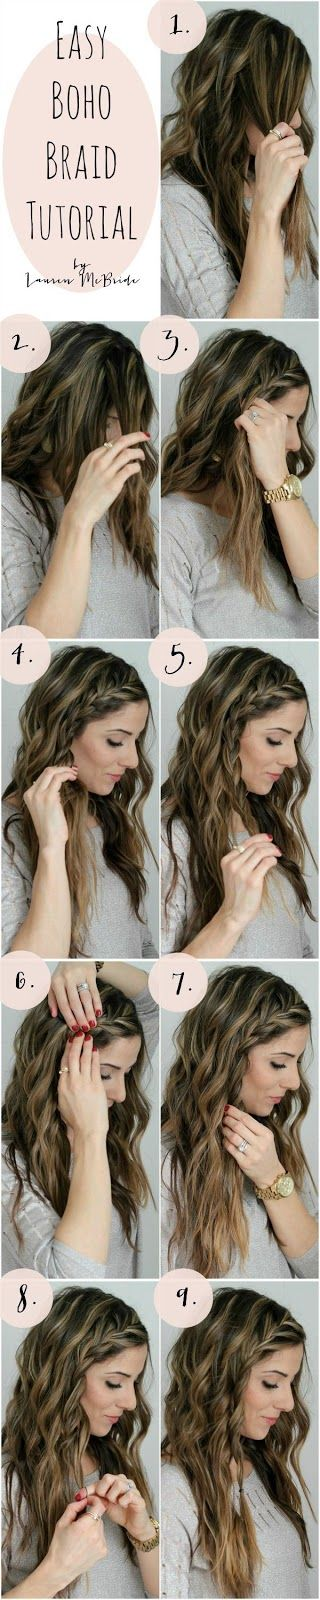 Make Your Own Hairstyle Simple 256 Best My Hair Images On Pinterest  Cute Hairstyles Hairstyle